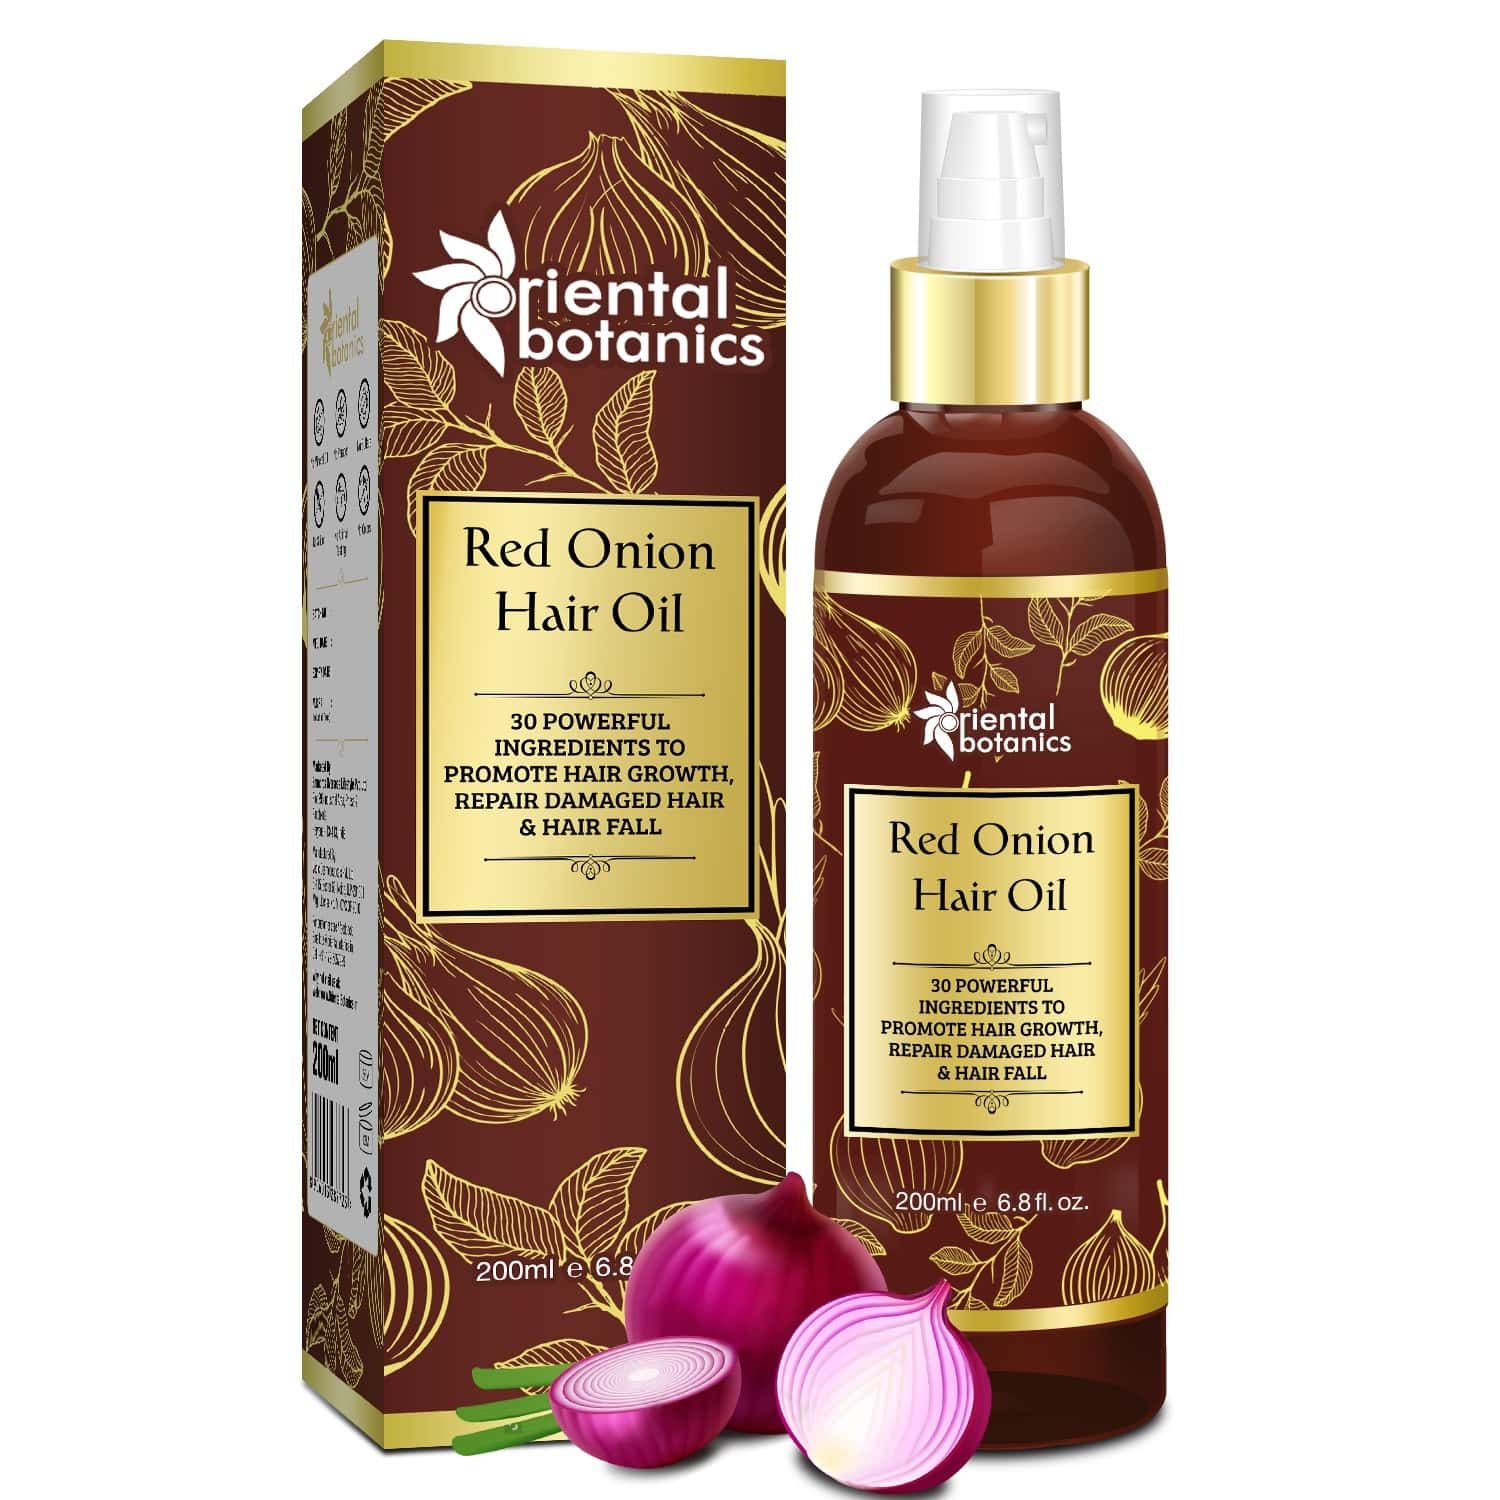 Oriental Botanics Red Onion Hair Oil With Comb Applicator 200ml - With 30 Oils & Extracts For Stronger Growth And To Control Hair Fall - 200 Ml